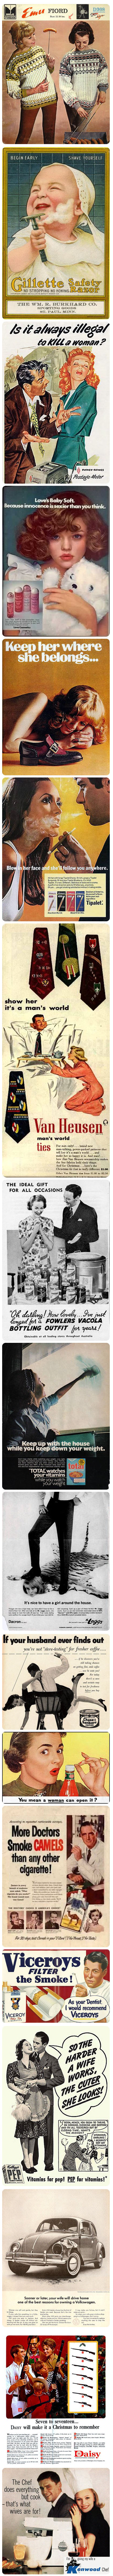 Vintage-Advertisements-That-Would-Totally-Be-Banned-Today